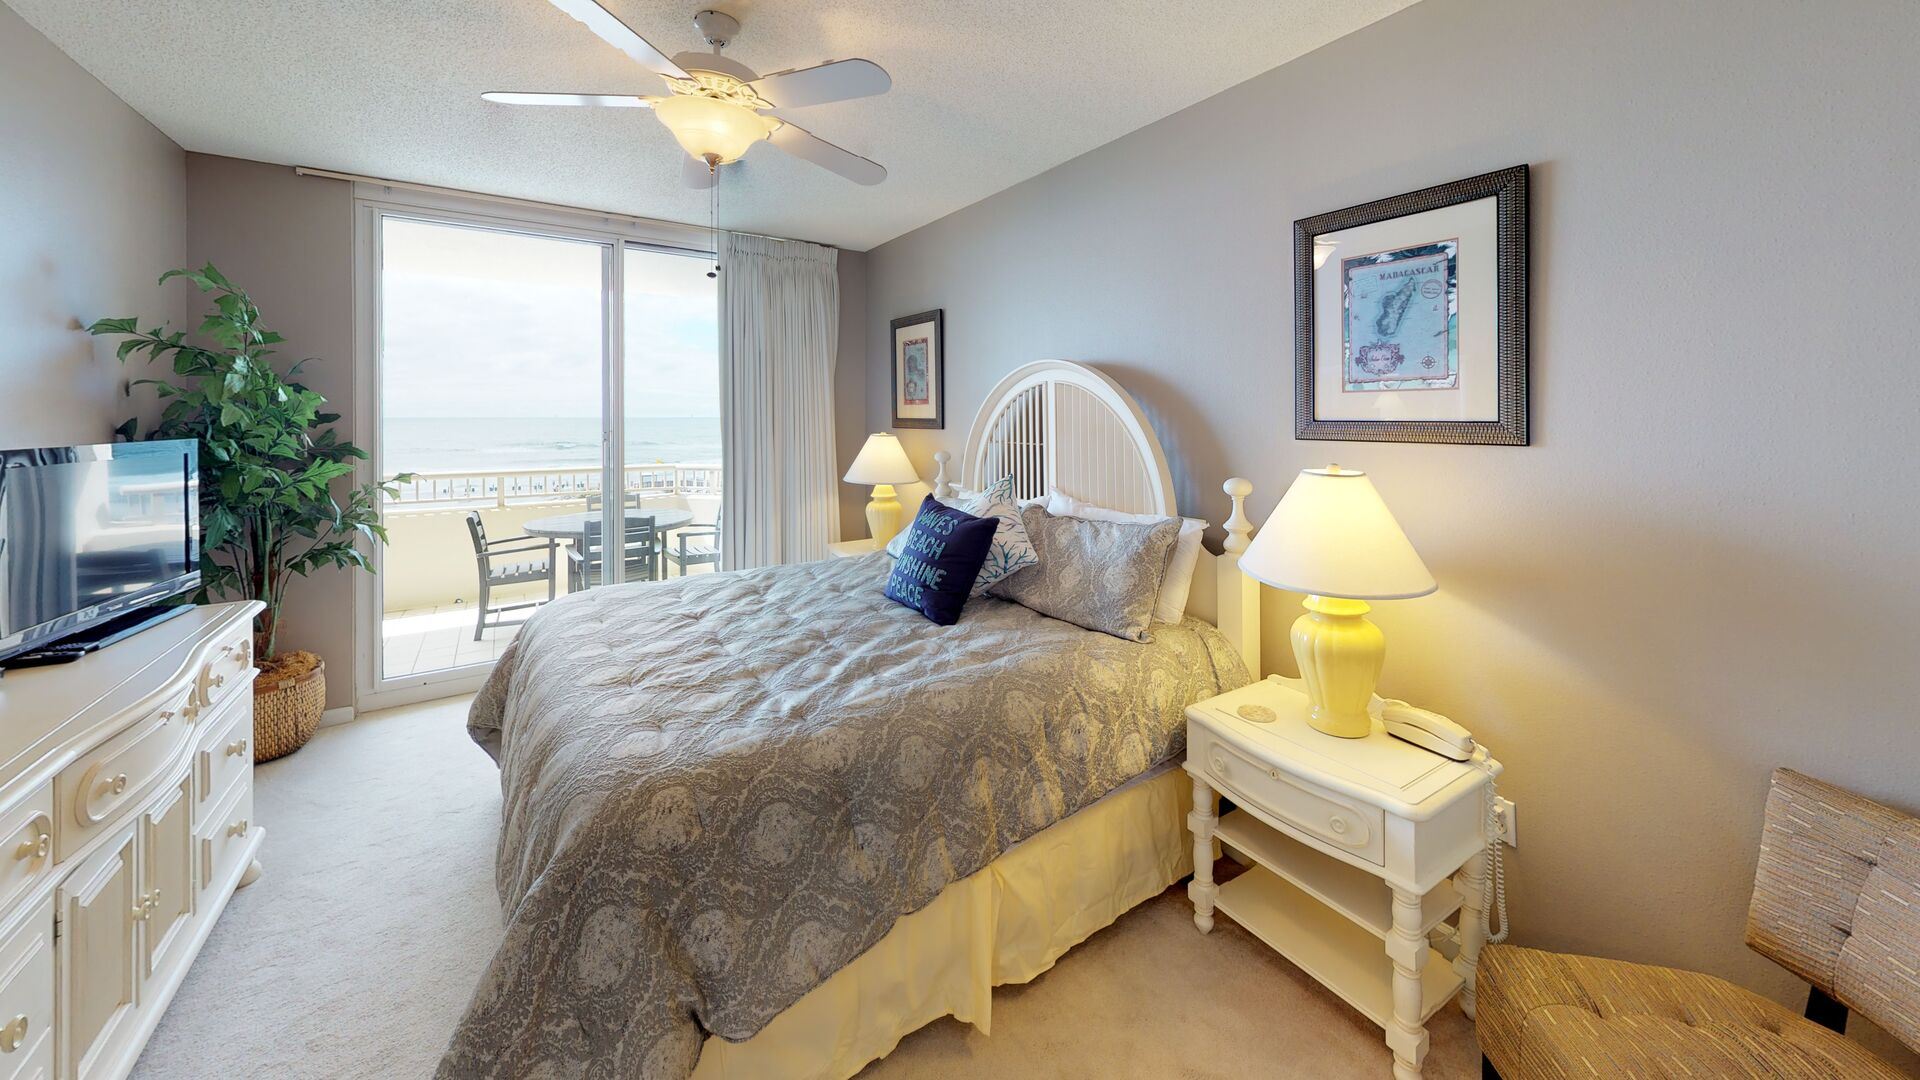 Master Bedroom Features a King Bed